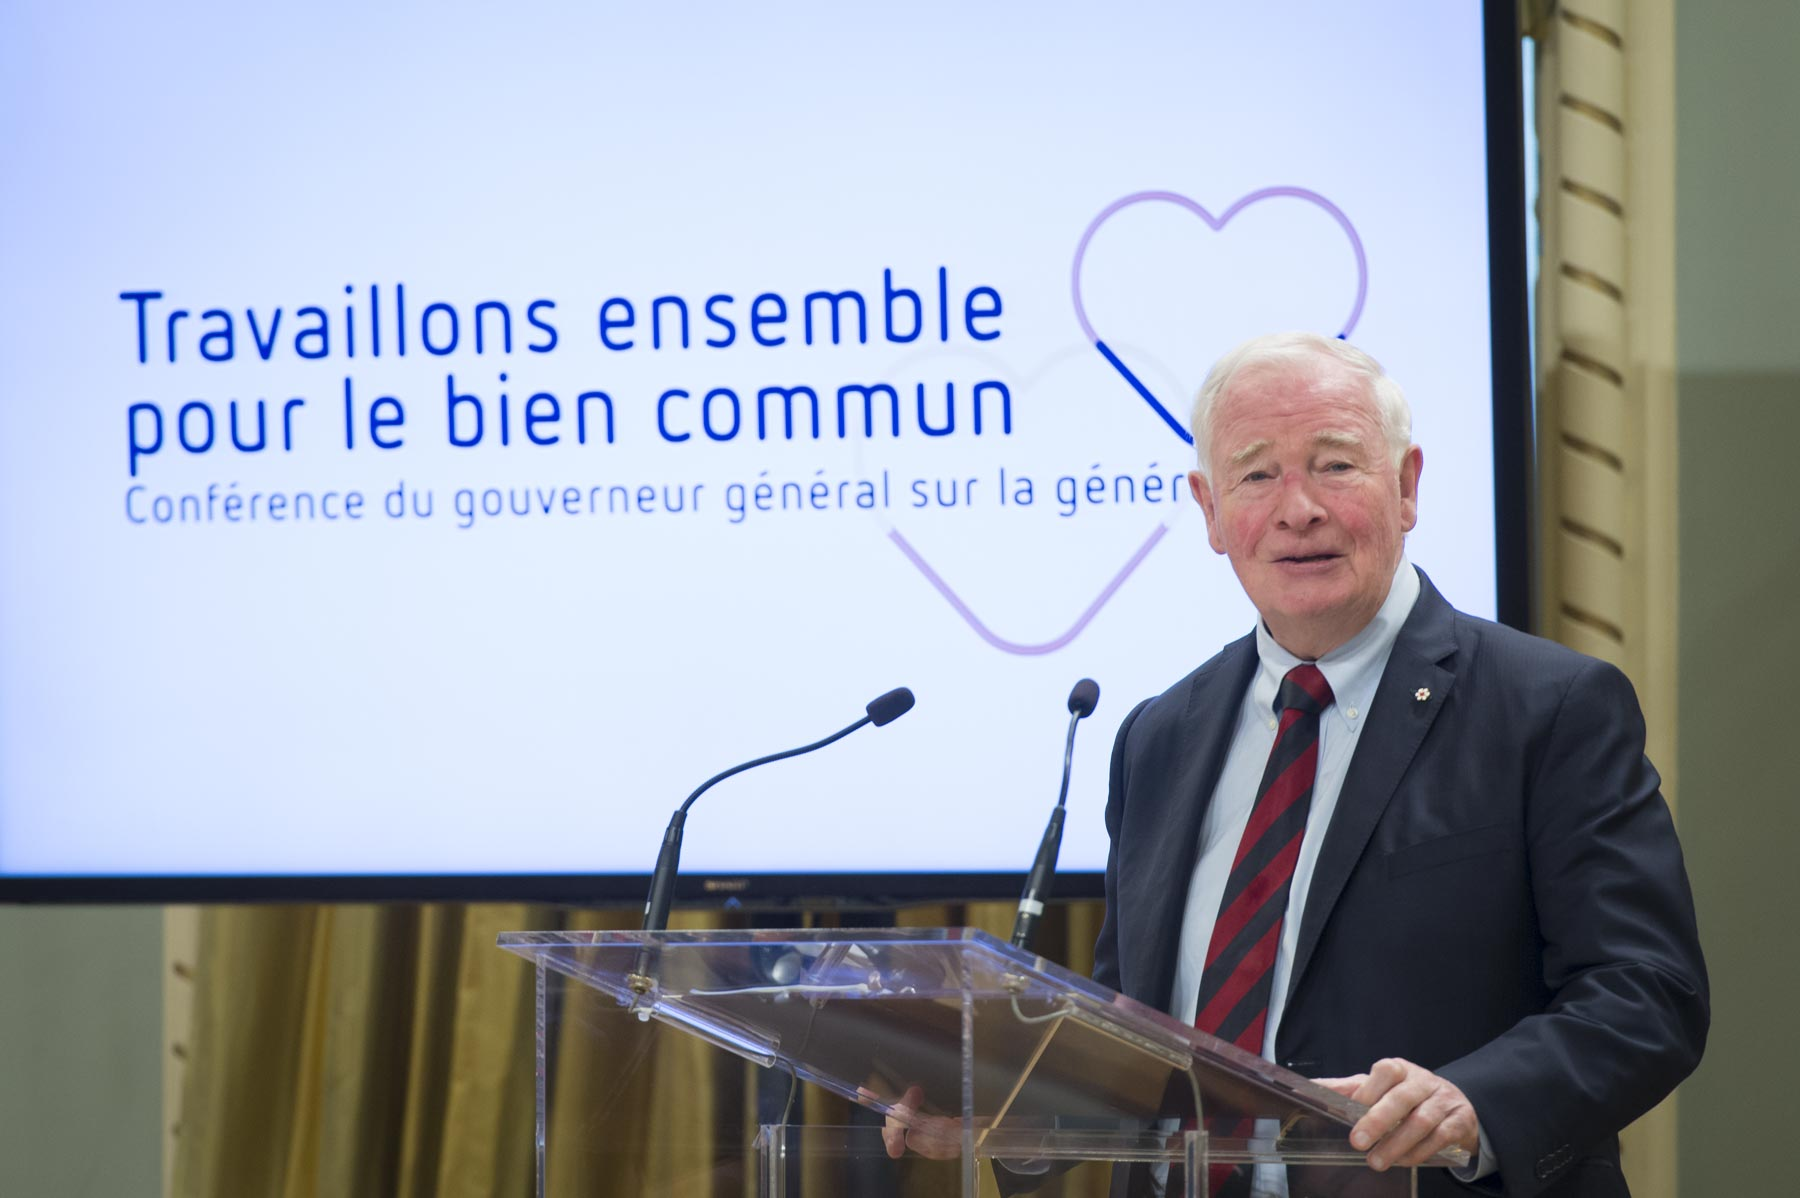 His Excellency the Right Honourable David Johnston, Governor General of Canada, hosted Working Together for the Common Good: Governor General's Conference on Giving at Rideau Hall, on April 27, 2017.